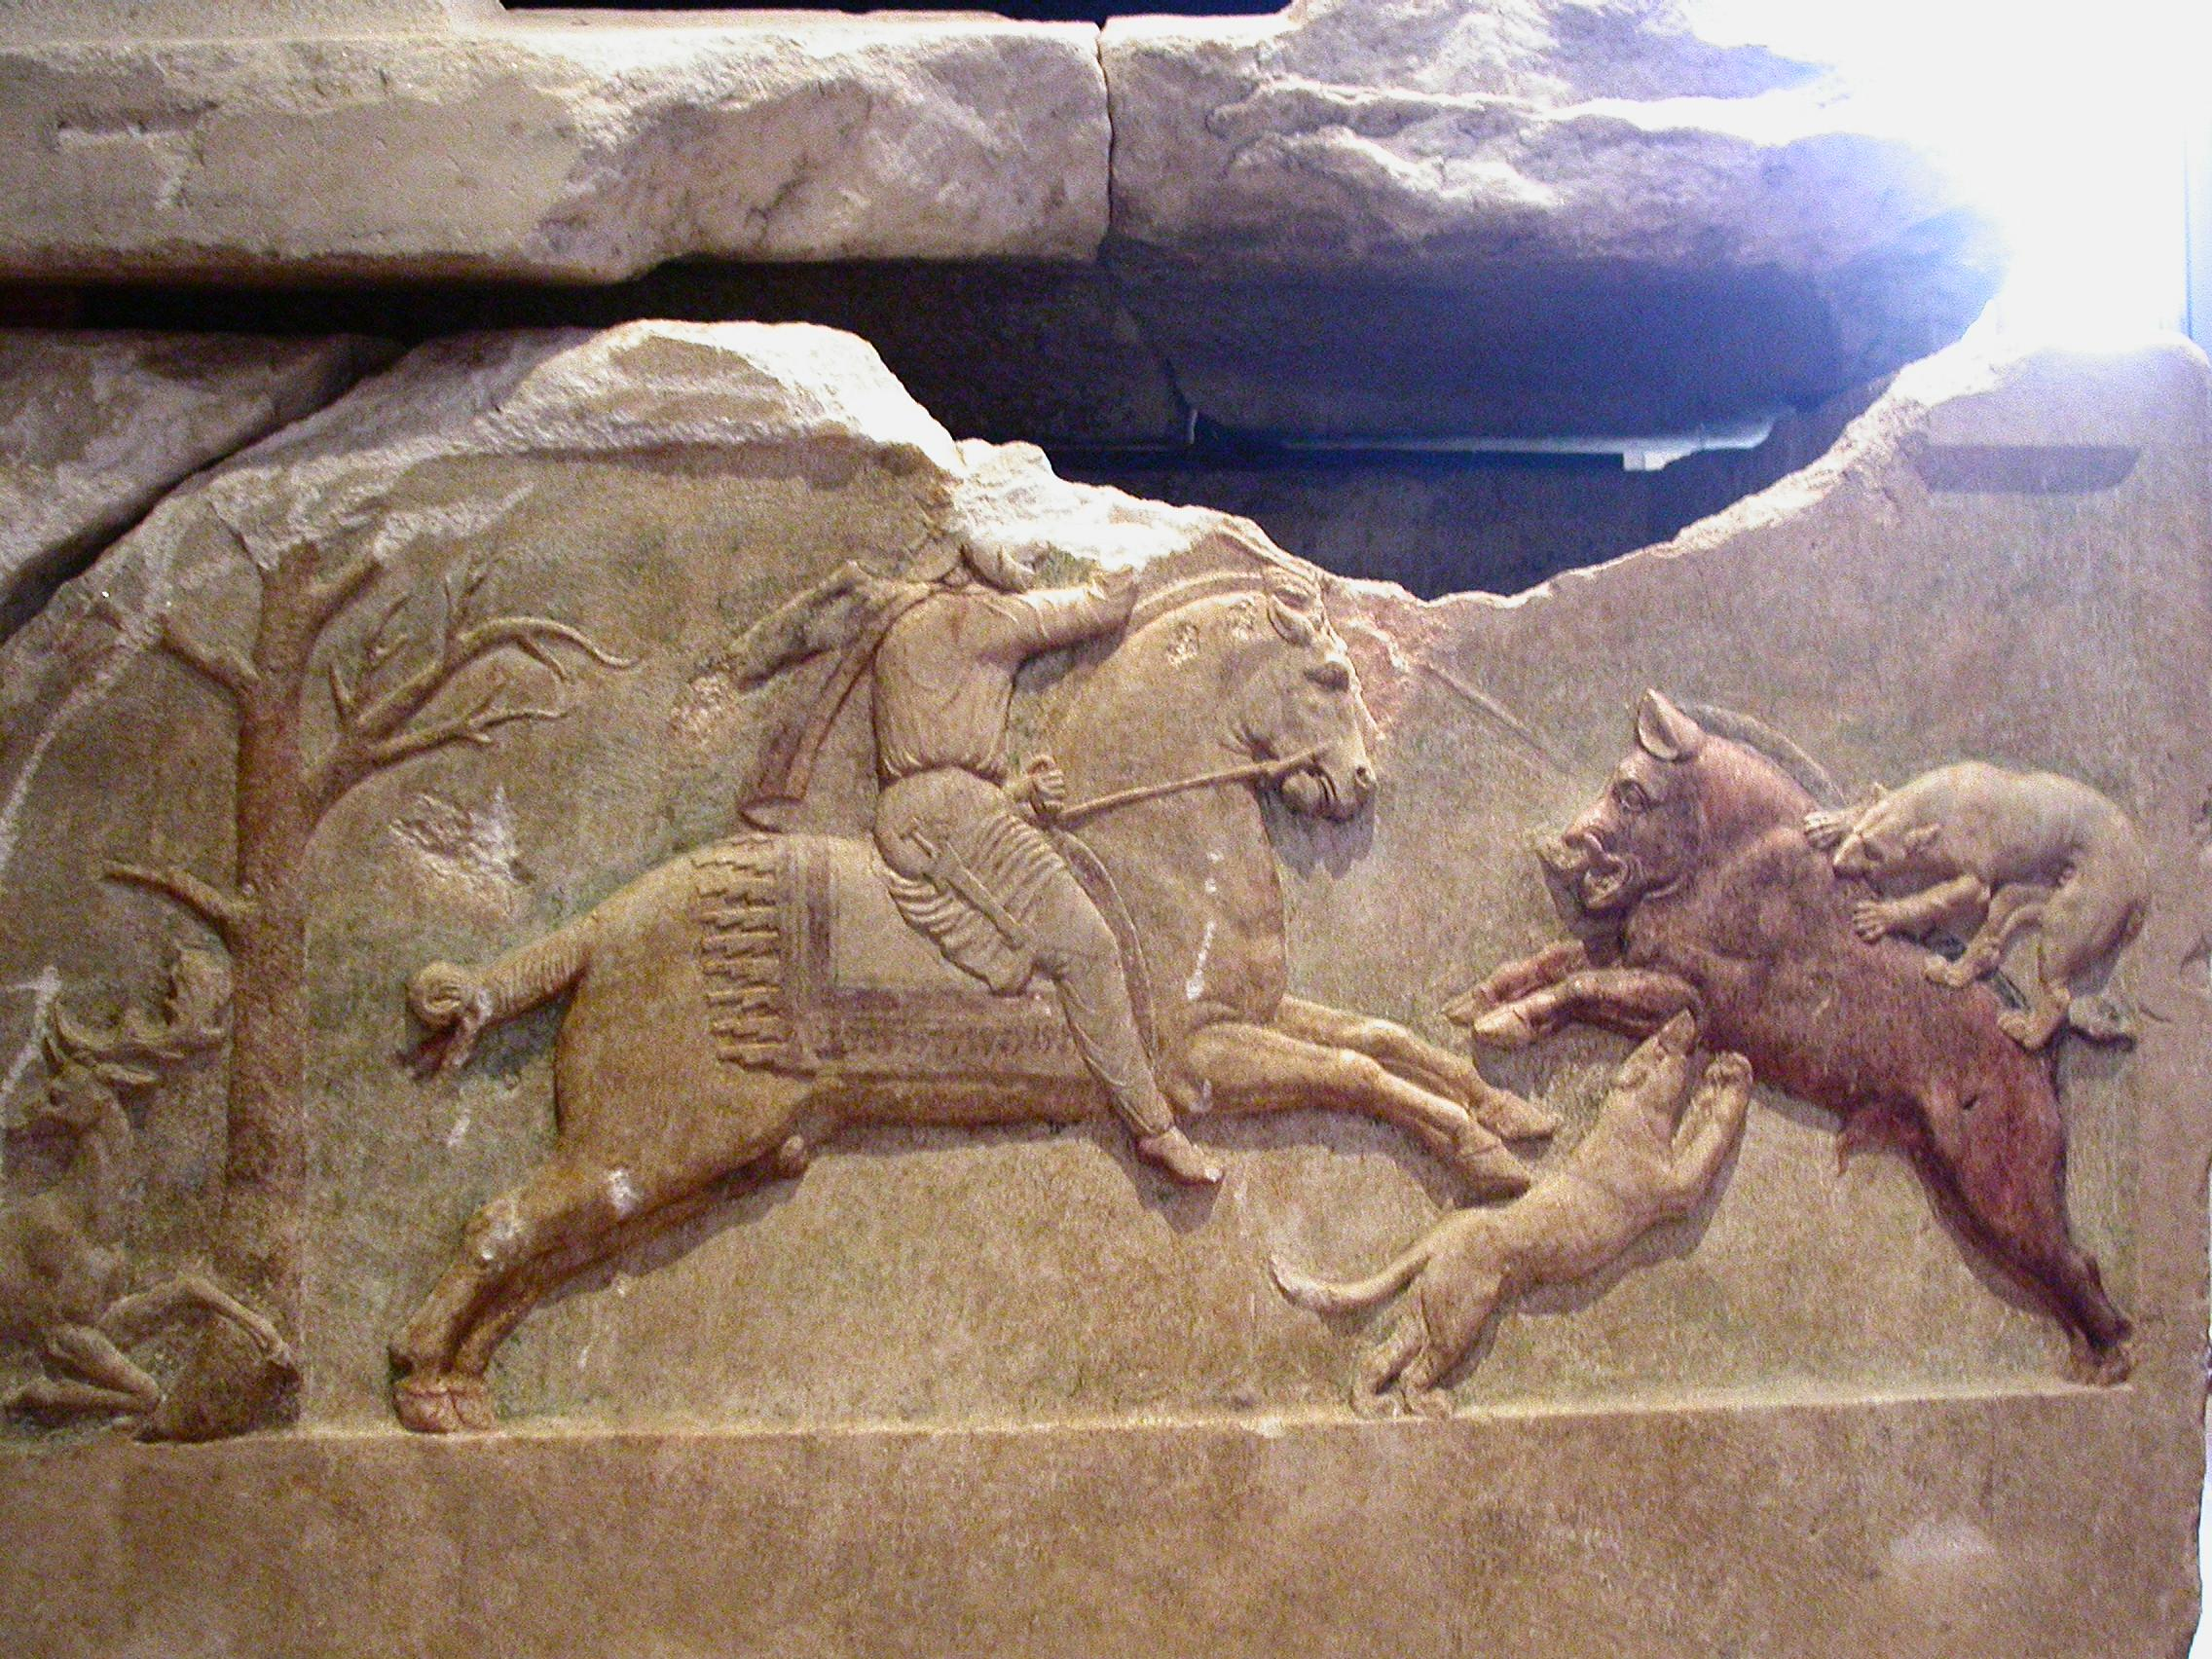 The Çan Sarcophagus, detail of hunting scene, 400-375 BC, village of Altıkulaç, near Çan, modern-day Turkey